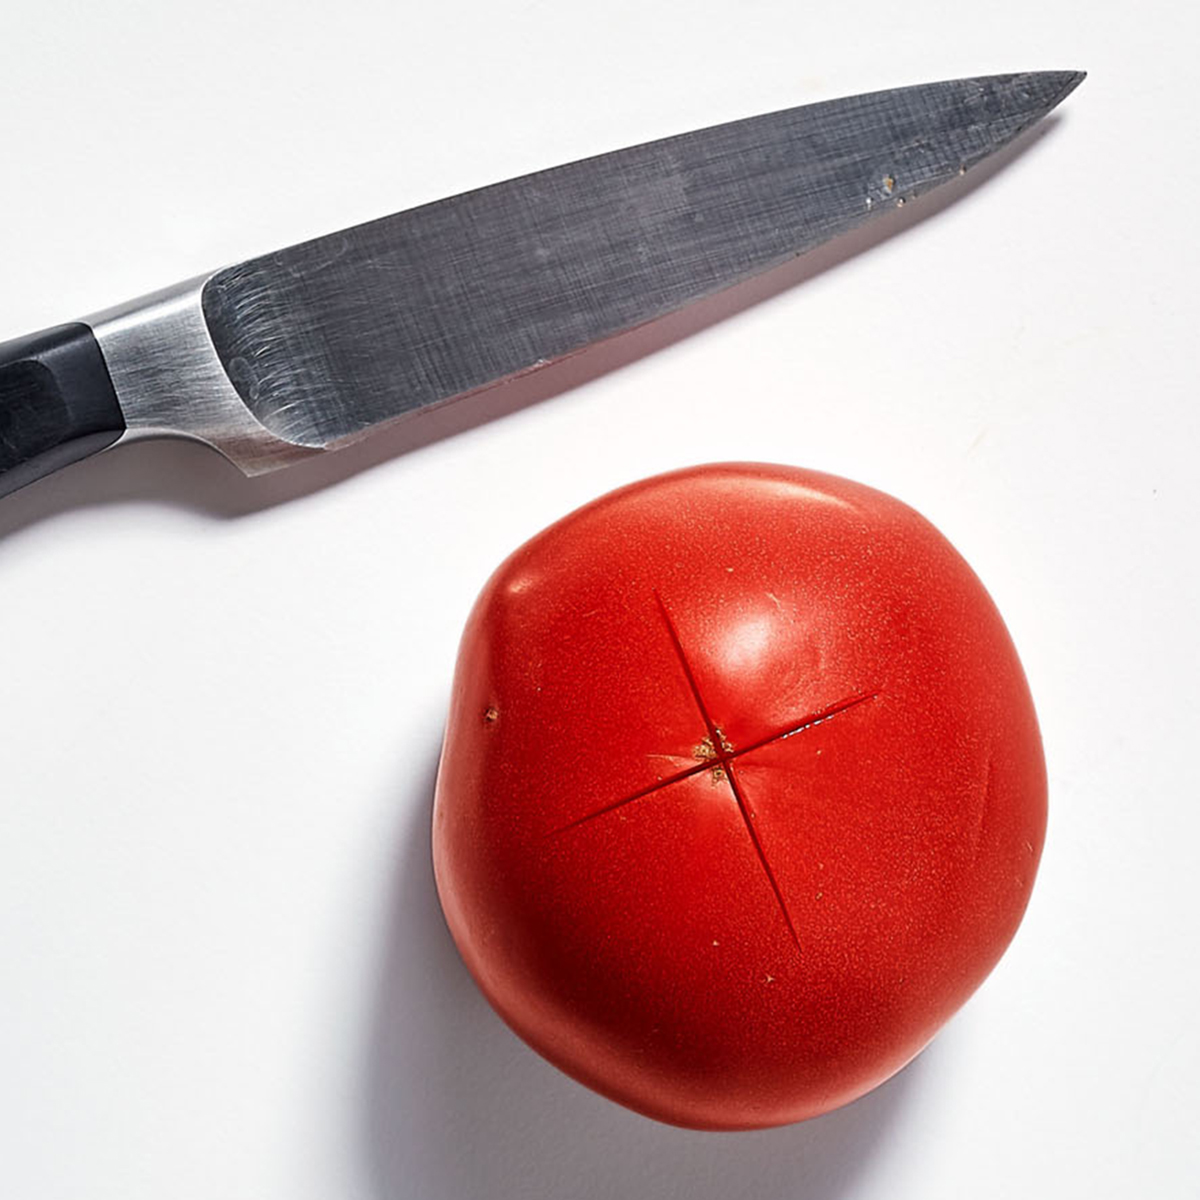 tomato with knife